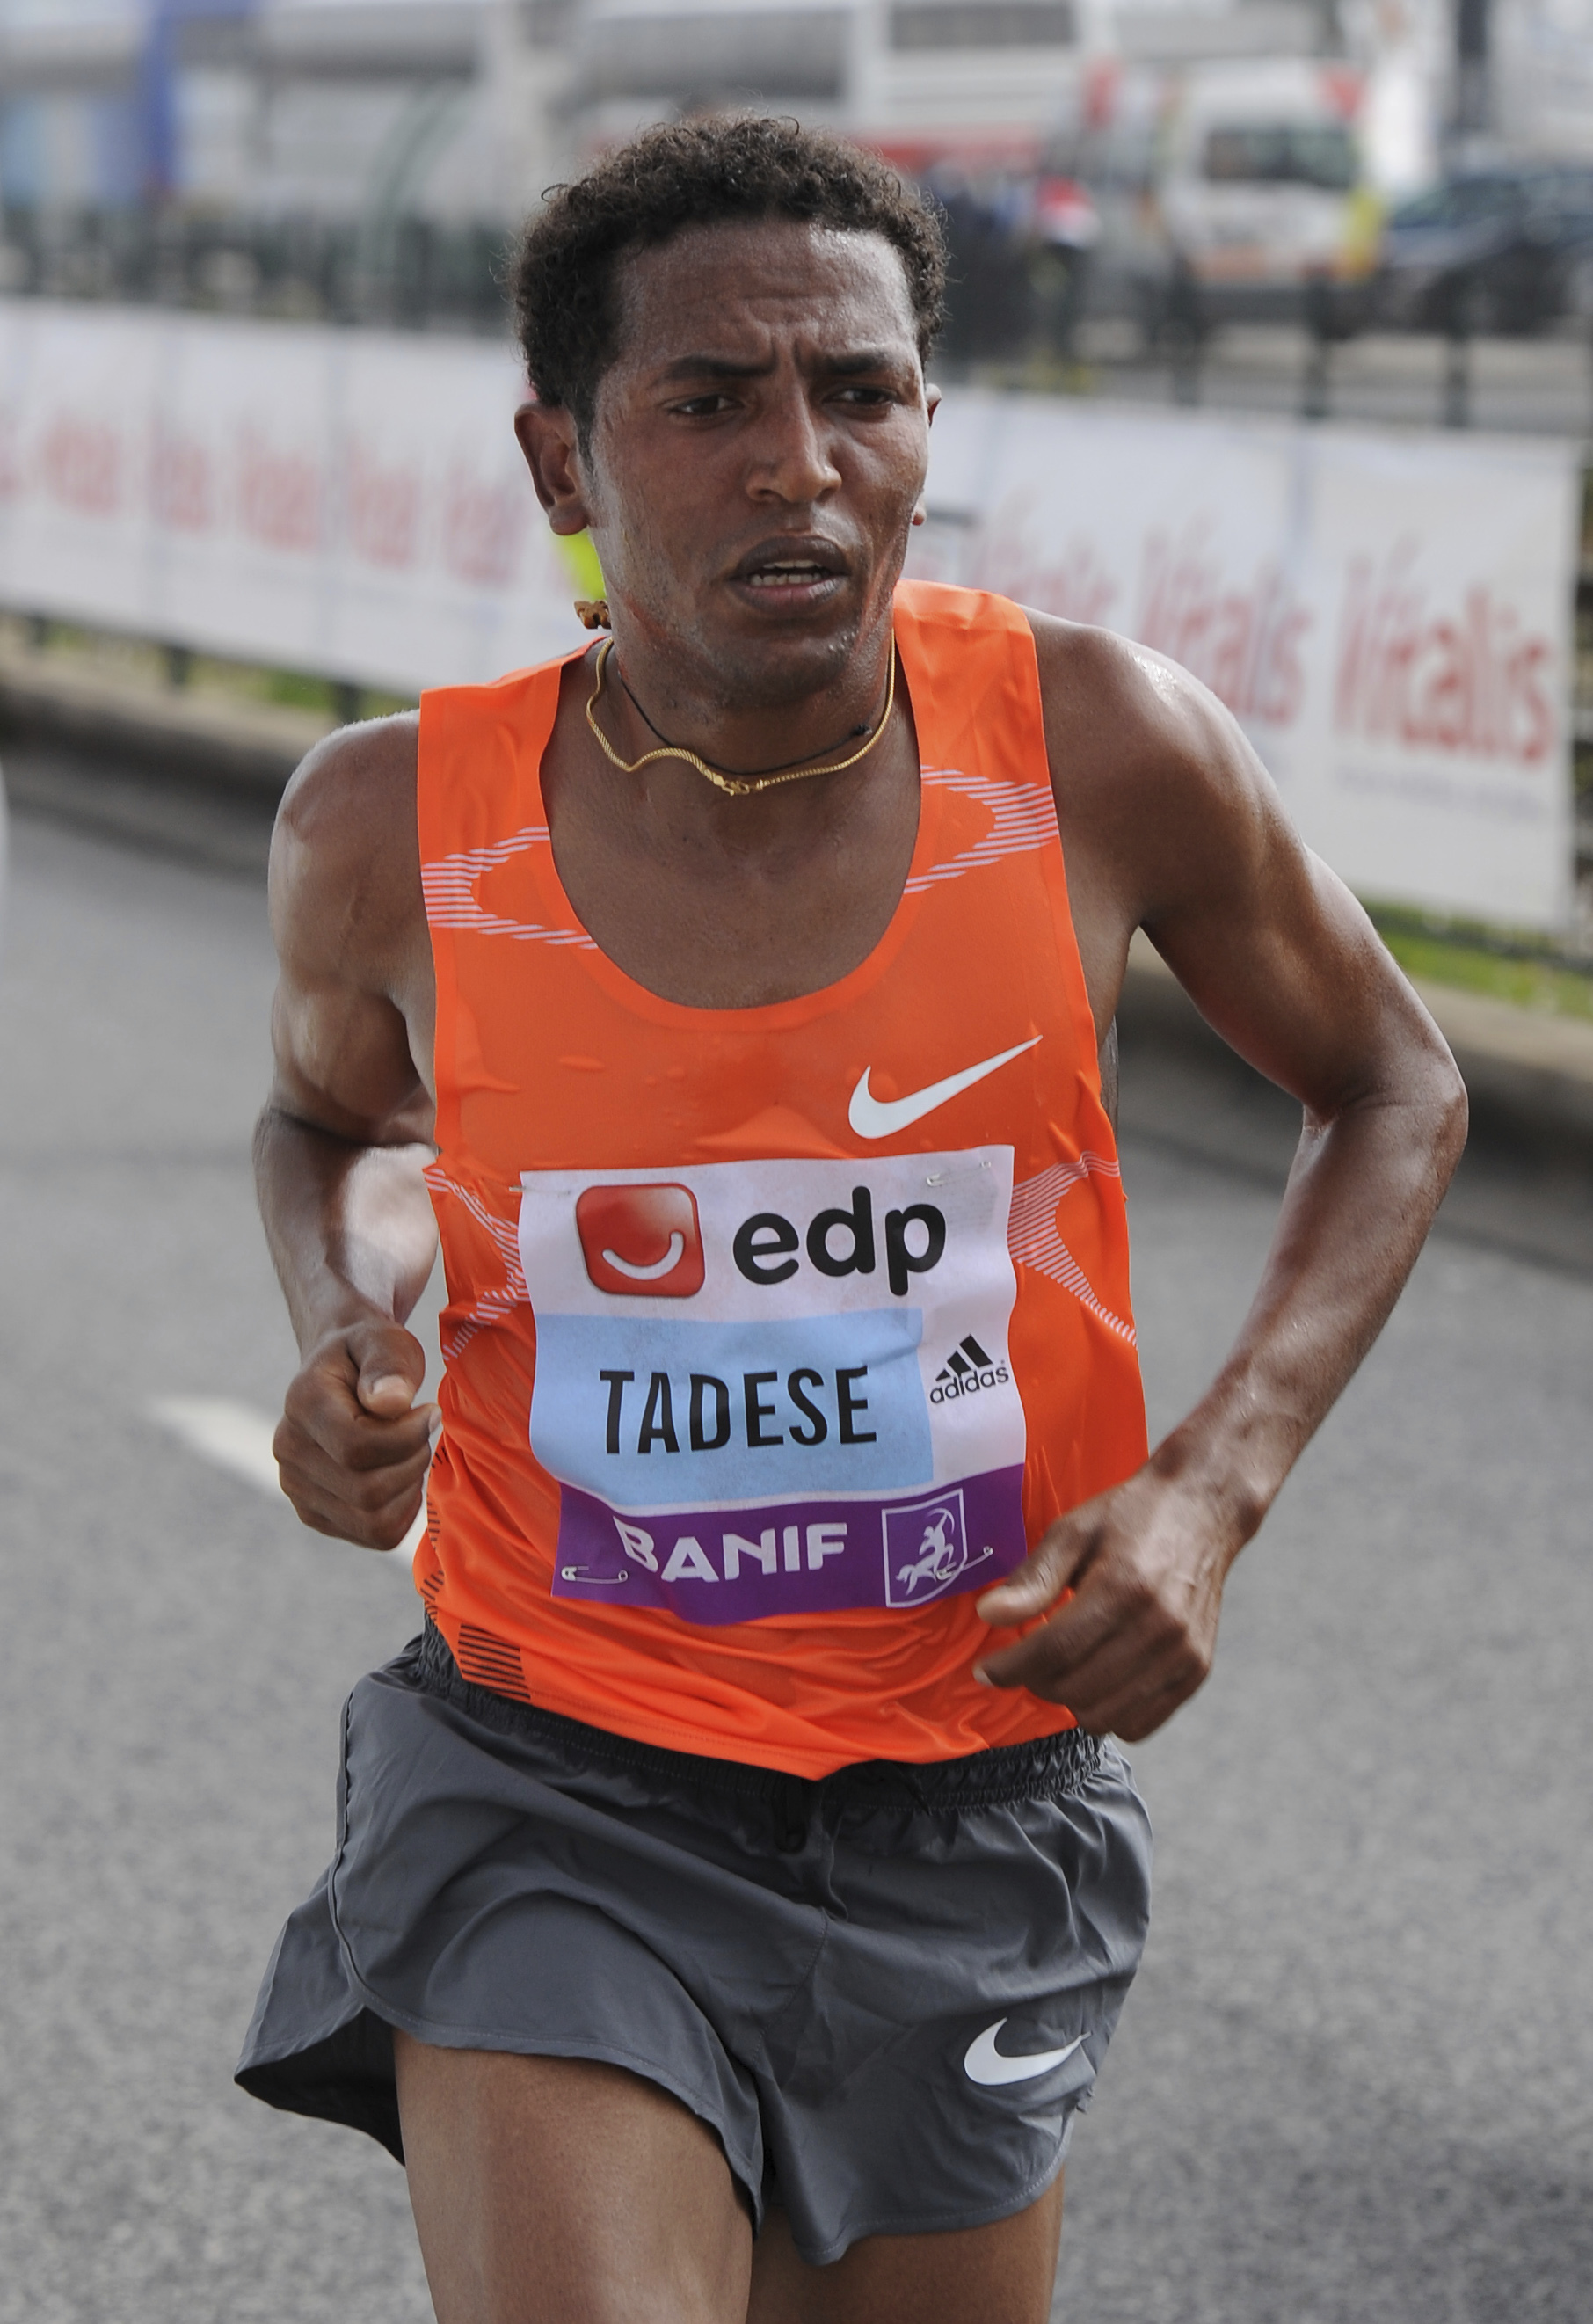 FILE - In this Sunday, March 21 2010 file photo, Zersenay Tadese, from Eritrea, runs on his way to win the Lisbon half-marathon Sunday, March 21 2010, in Lisbon. On the 63rd anniversary of Roger Bannister breaking the four-minute mile, three elite athlete